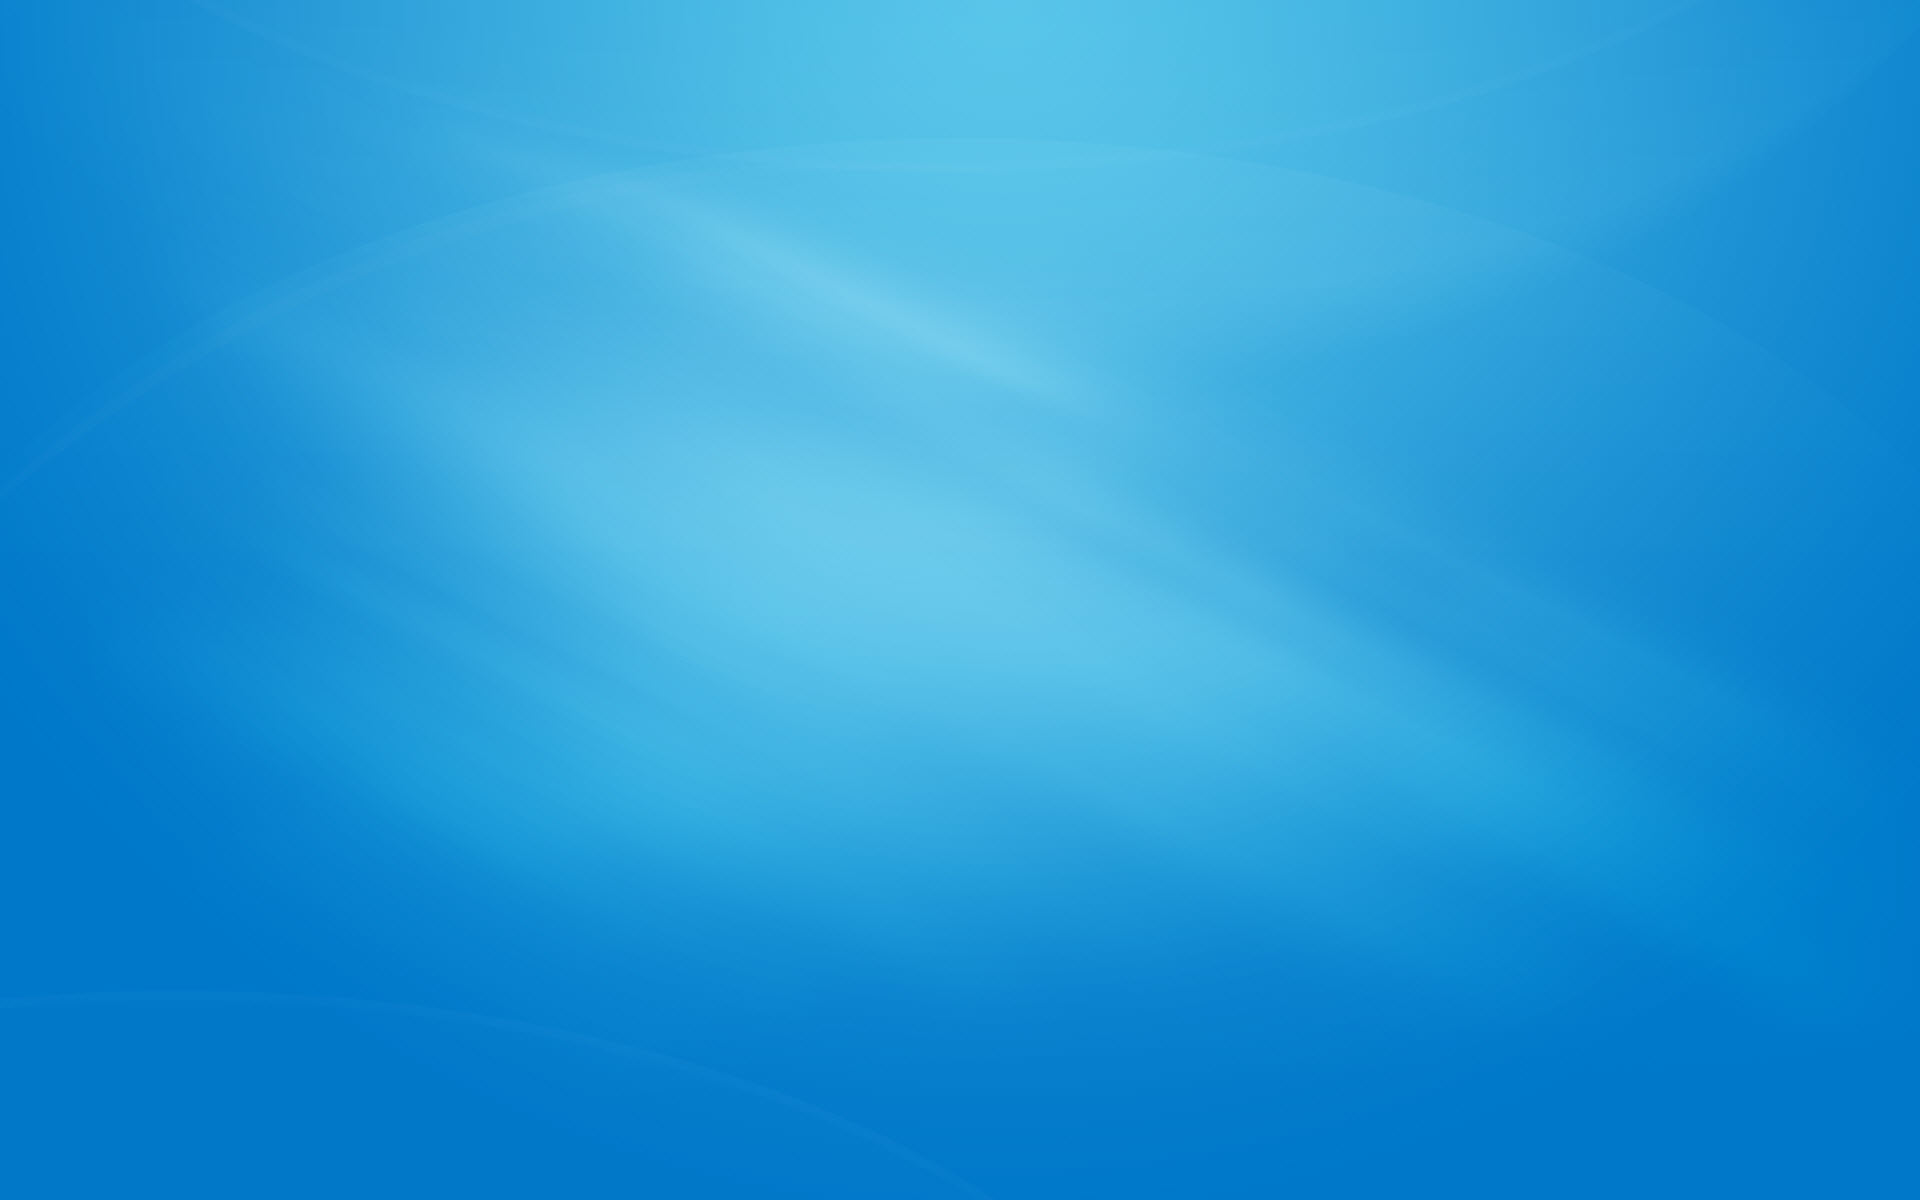 Blue Wallpaper_simple